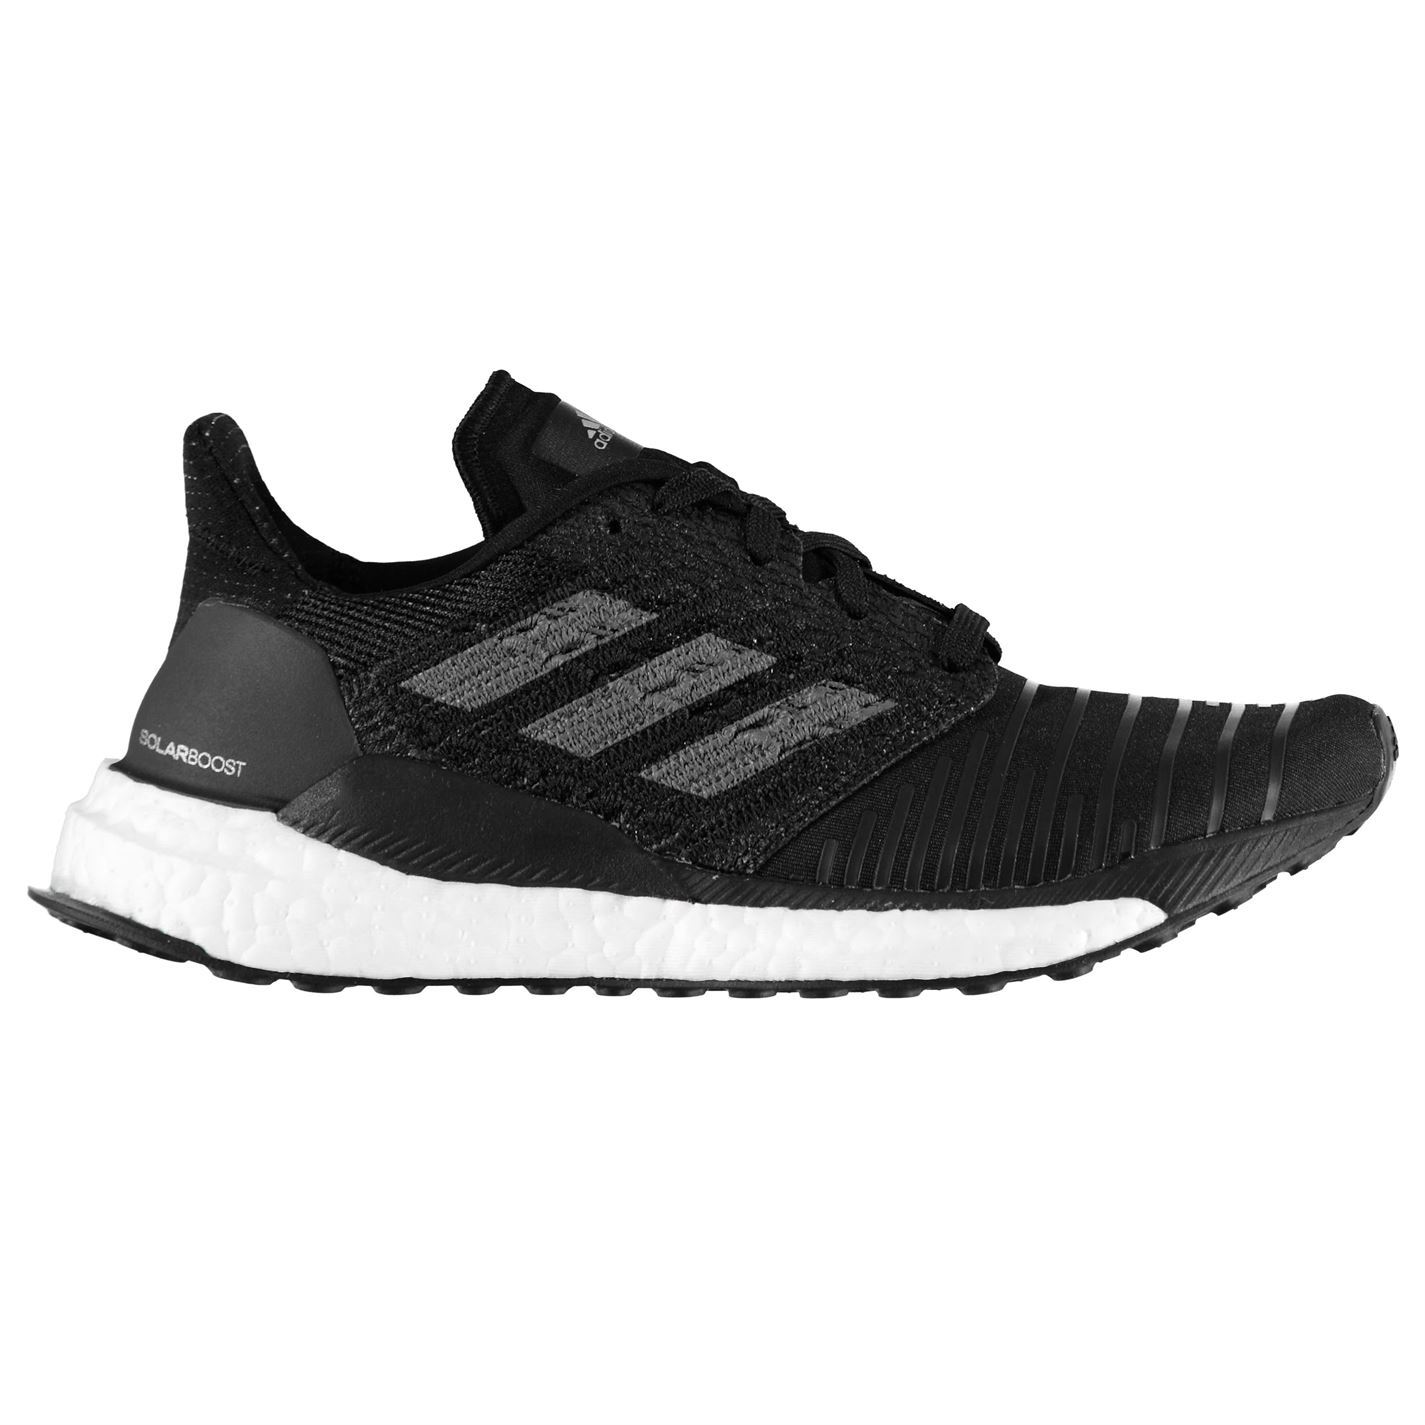 Adidas Damenschuhe Lightweight Solarboost Running Schuhes Road Lightweight Damenschuhe Stretch 7ef477